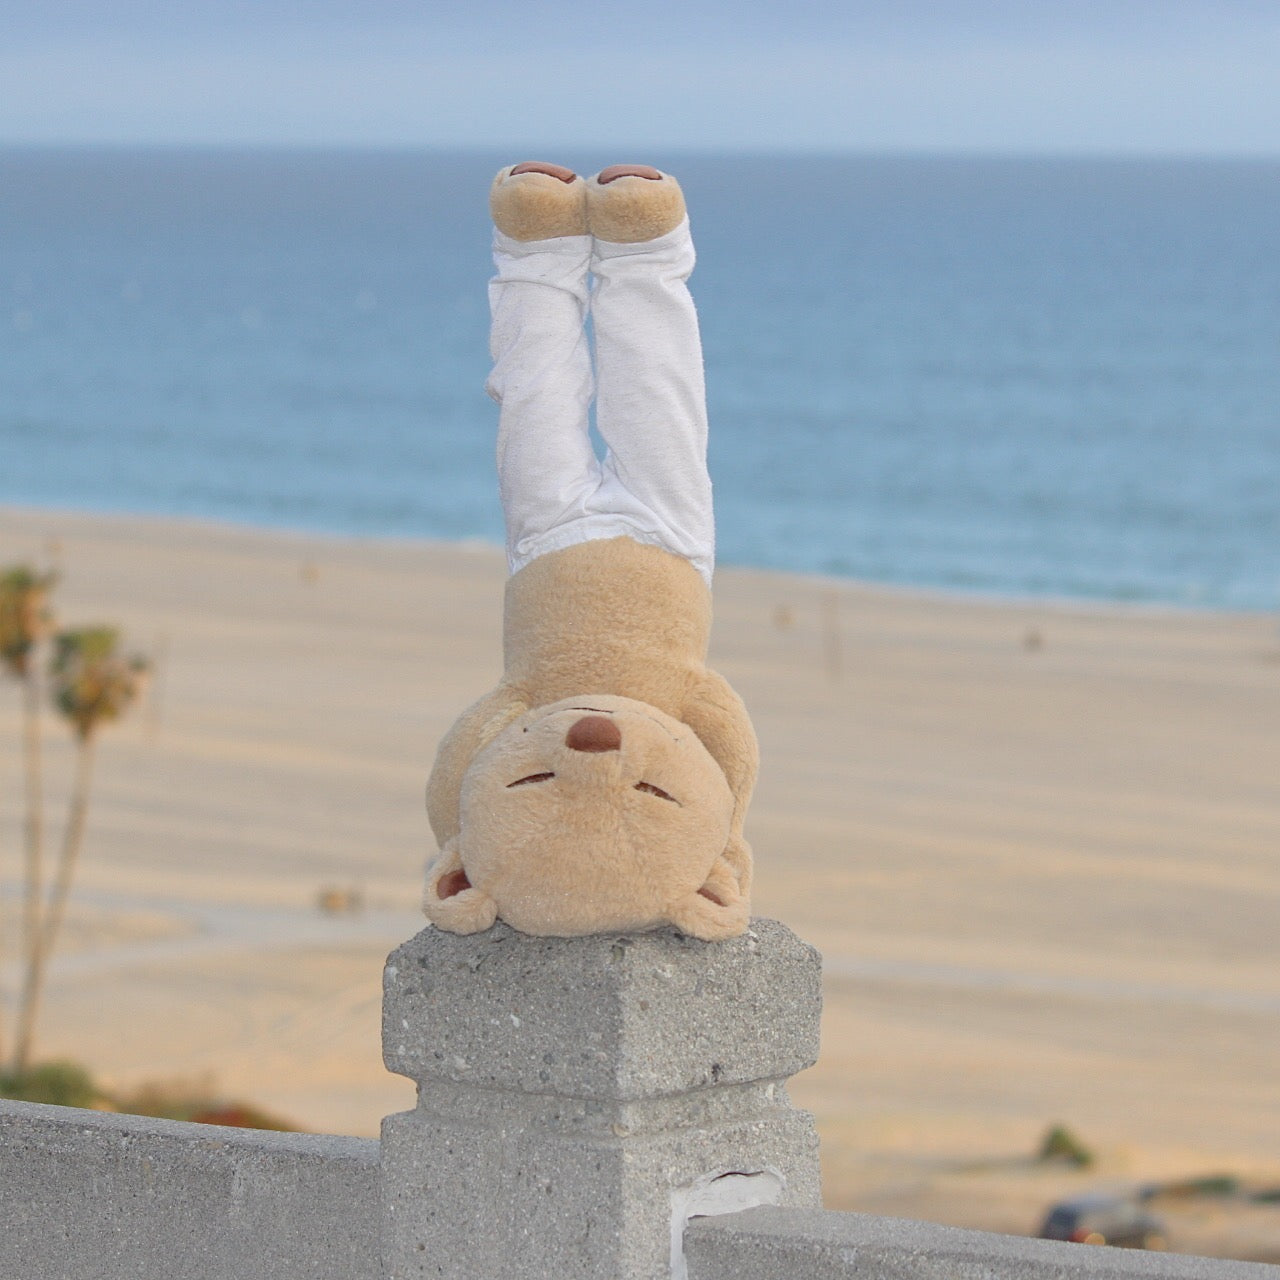 Headstand Pose Meddy Teddy at the Beach